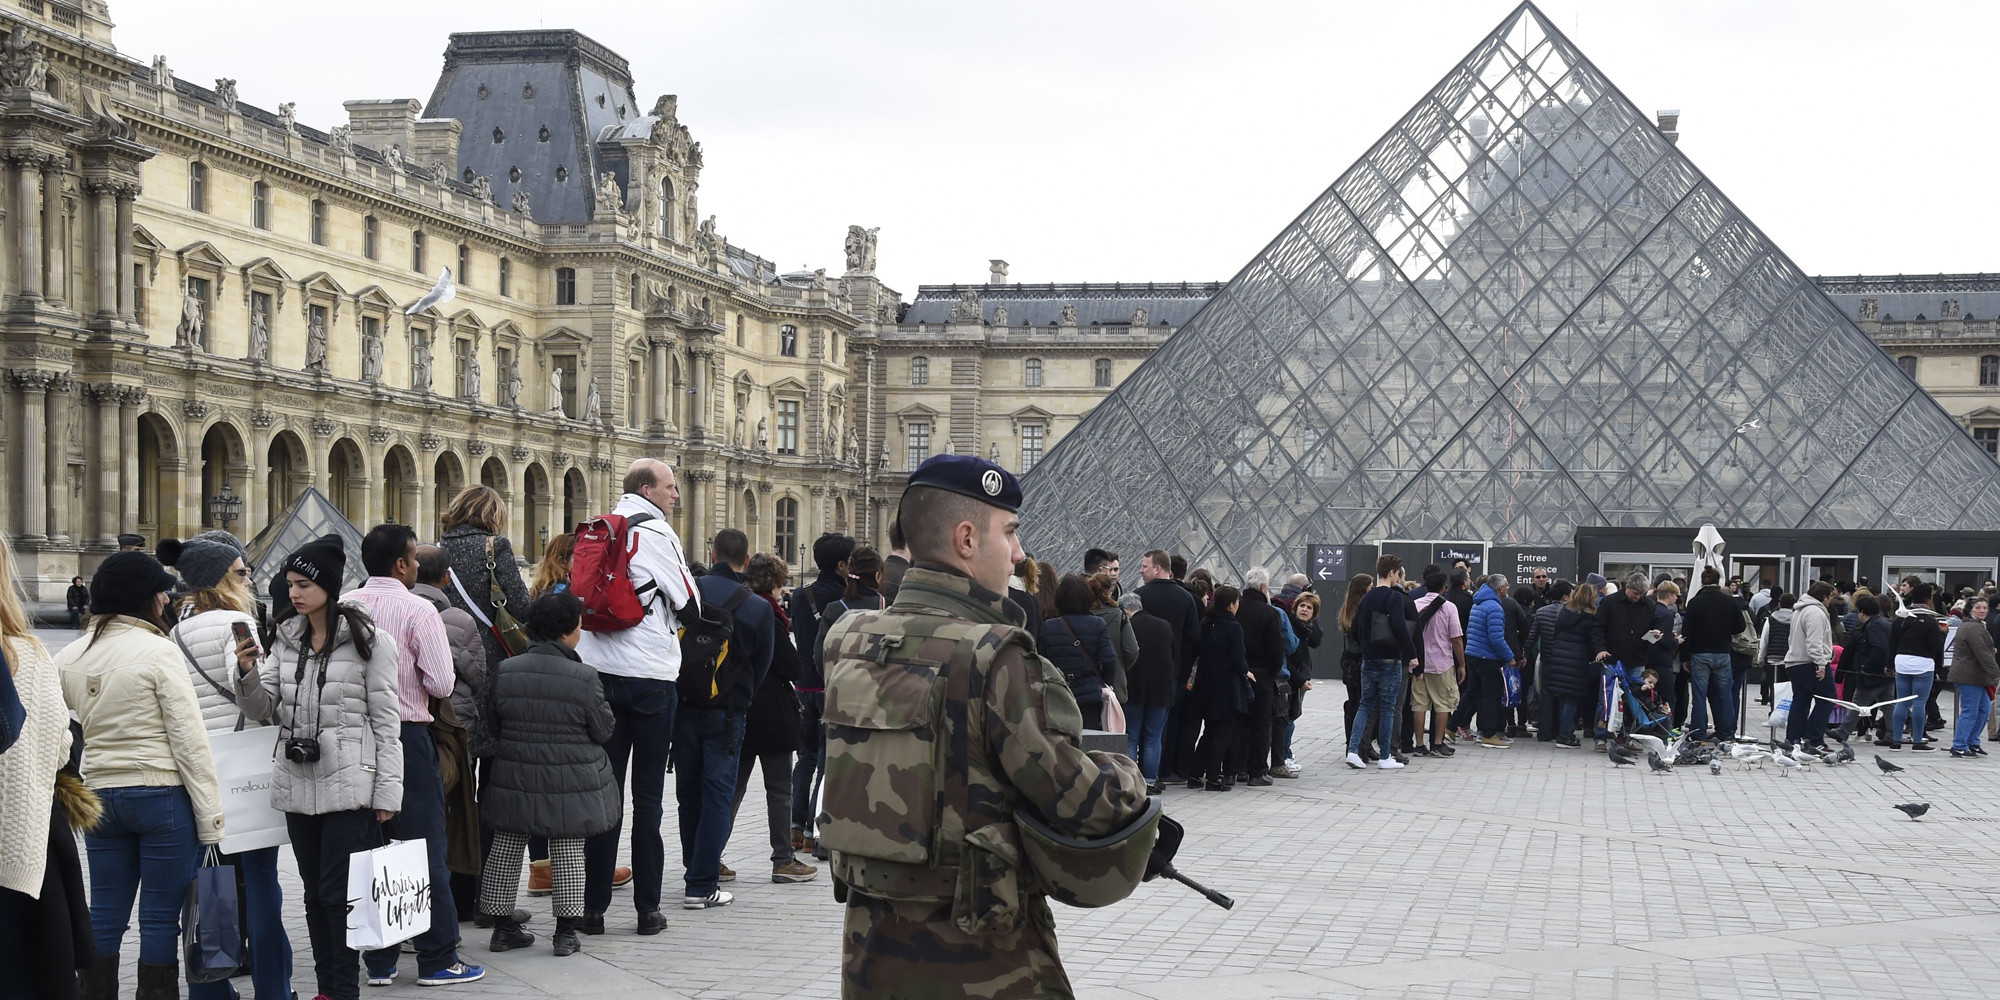 A French soldier enforcing the Vigipirate plan, France's national security alert system, patrols in front of the Louvre museum as visitors line up for entry the day of its reopening on November 16, 2015 in Paris, three days after a series of deadly coordinated attacks claimed by Islamic State jihadists, which killed at least 129 people and left more than 350 injured on November 13. AFP PHOTO/DOMINIQUE FAGET